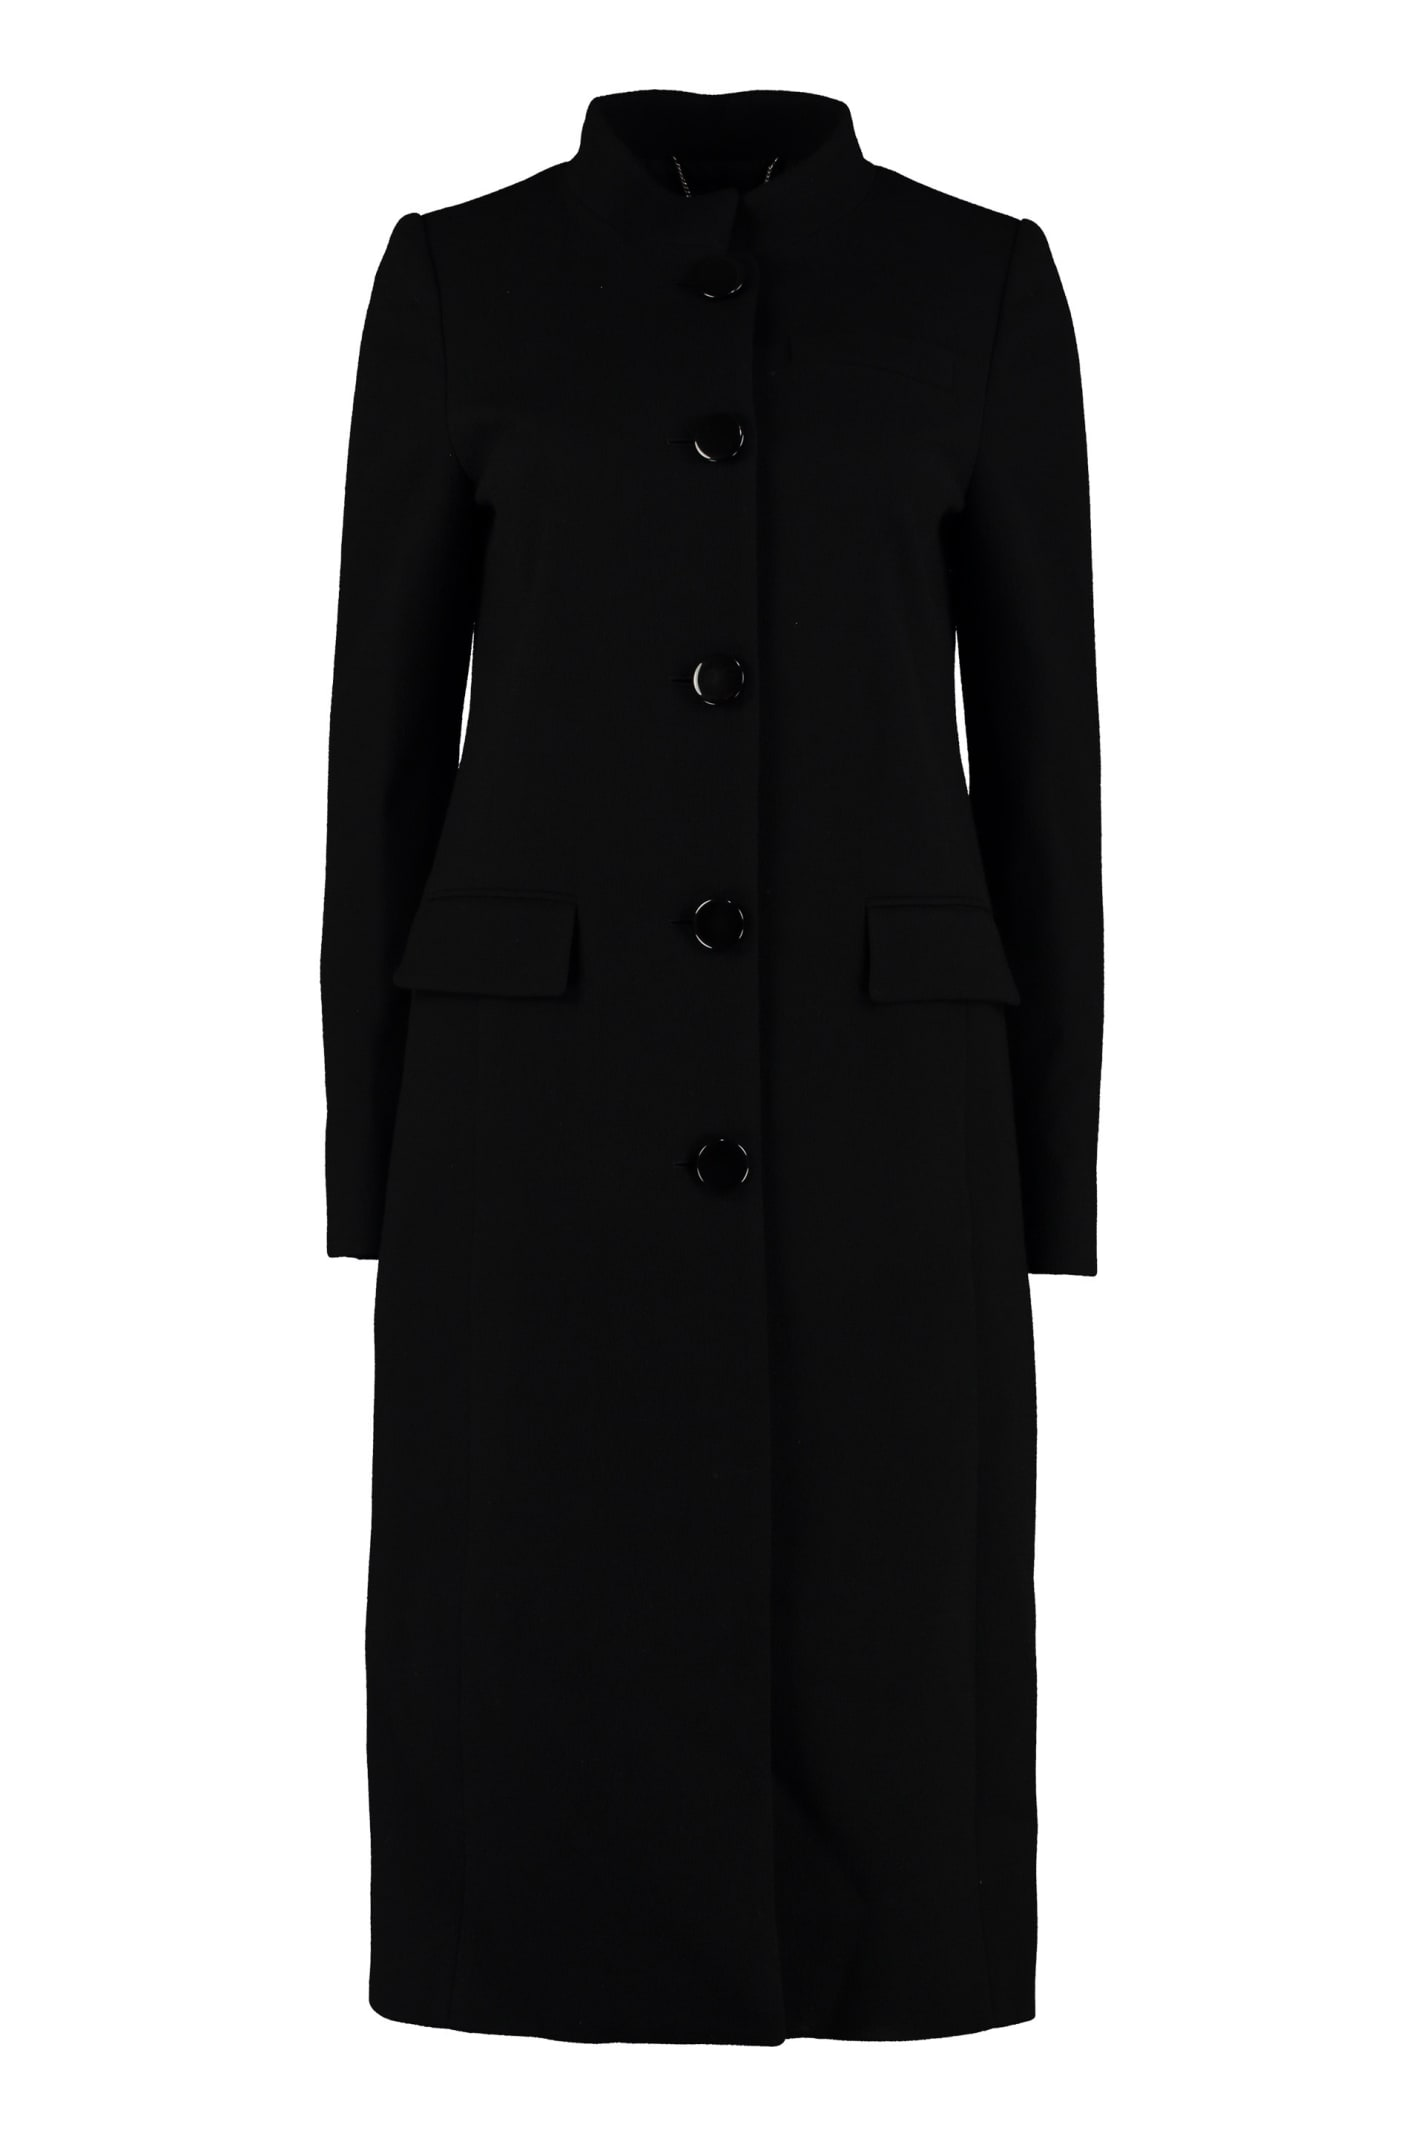 Givenchy Single-breasted Wool Coat